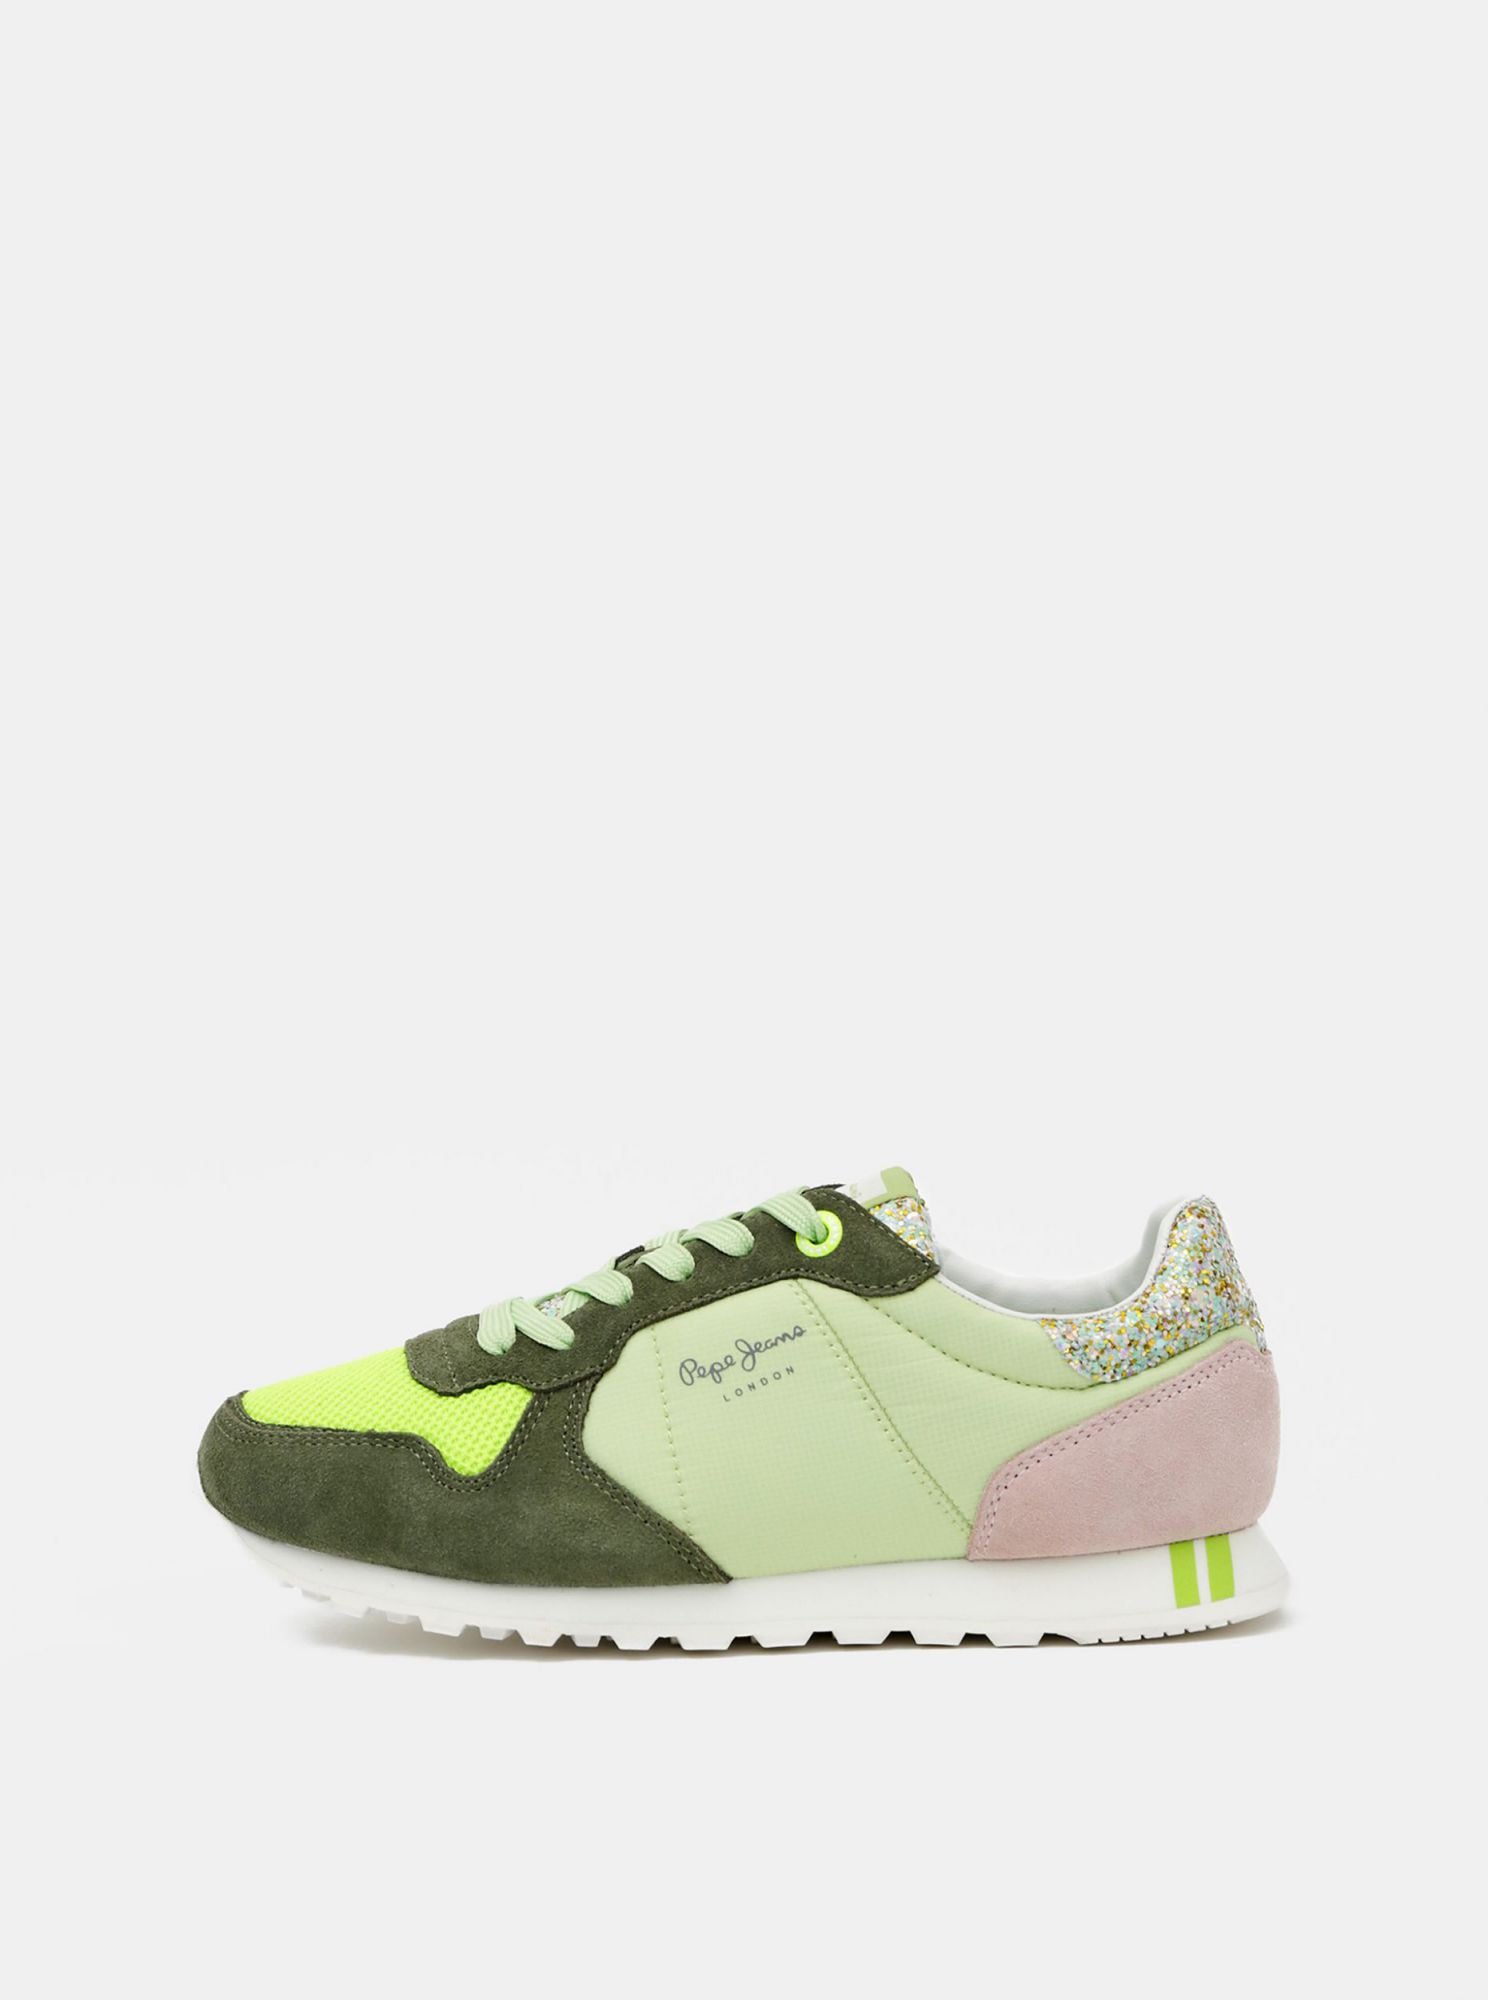 Green Women 39 S Suede Sneakers Pepe Jeans Women S Shoes Differenta Com